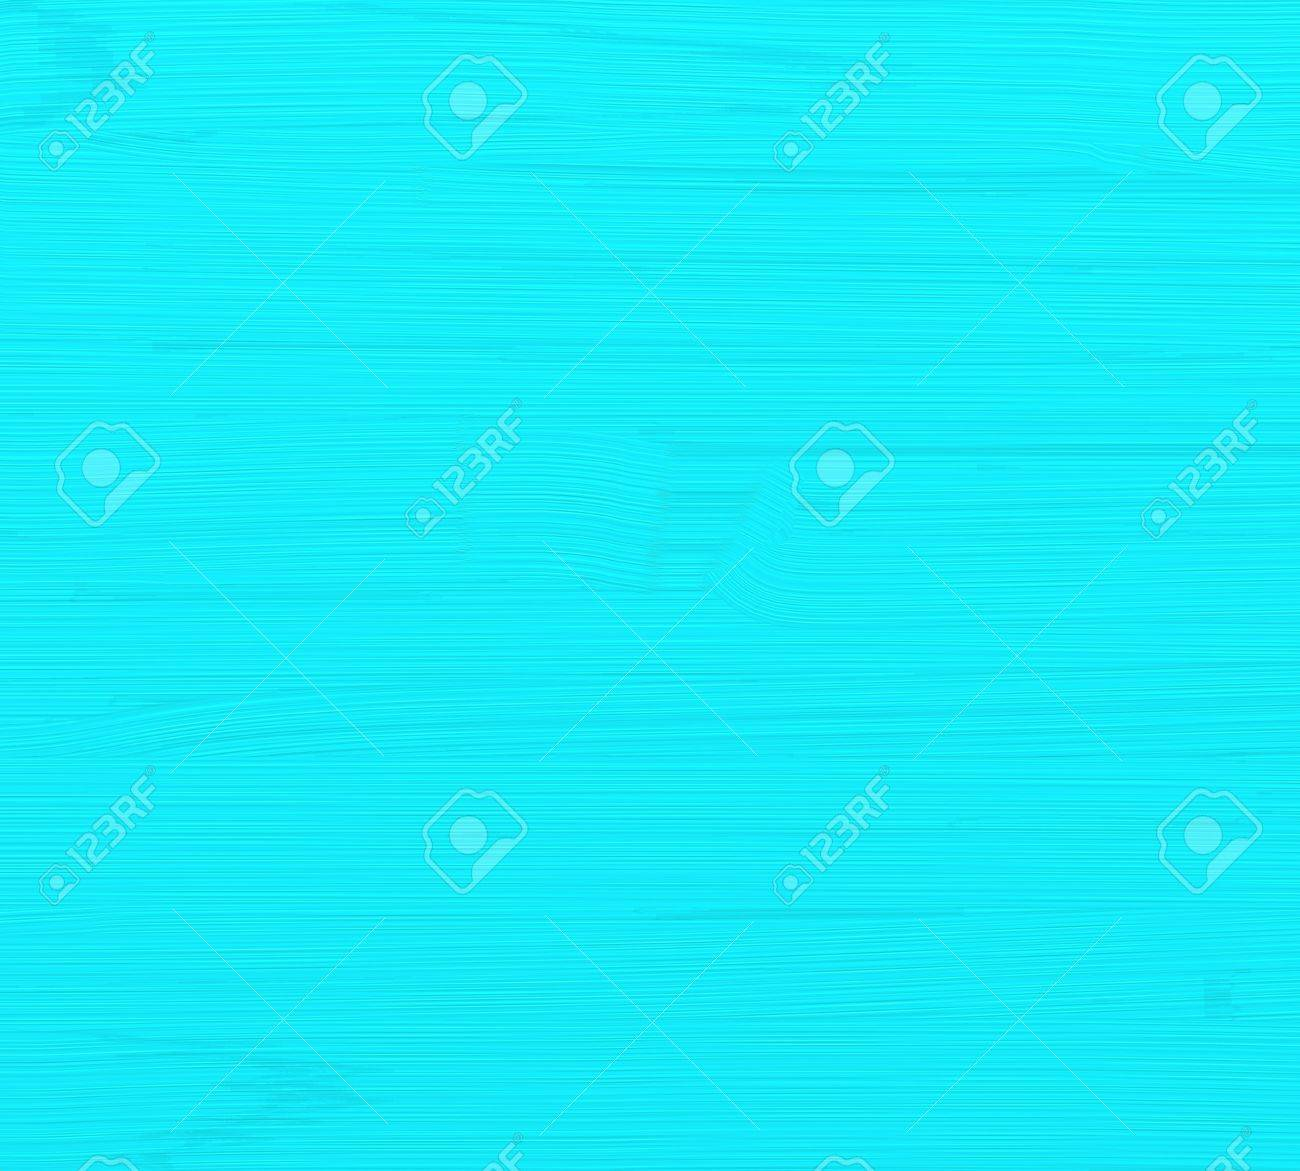 Light Blue Paint light blue paint texture background stock photo, picture and